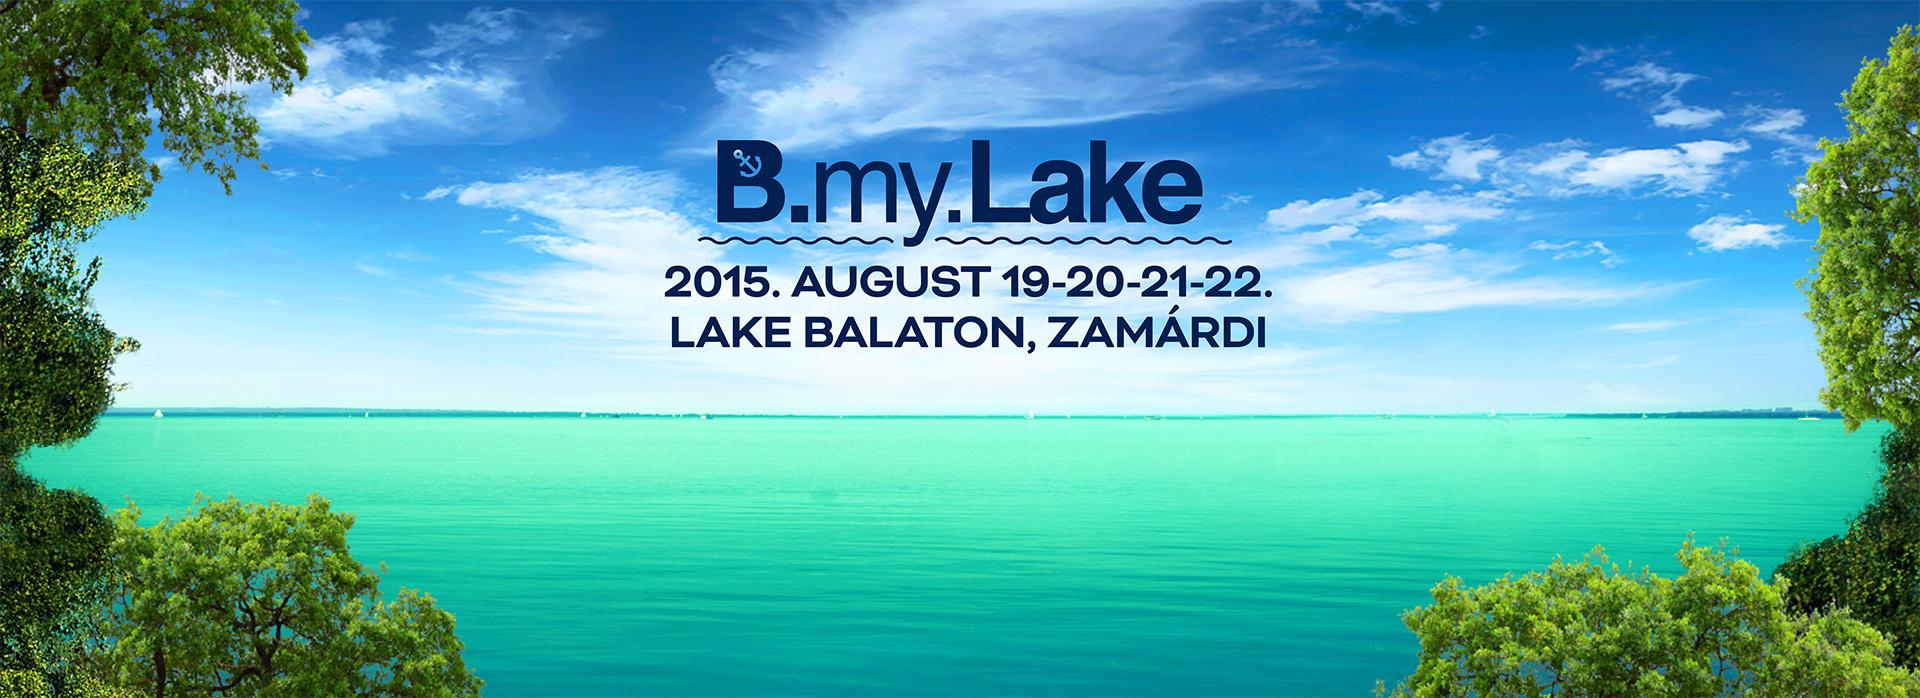 B my Lake Festival @ Zamárdi, Hungary. 19 - 22 August